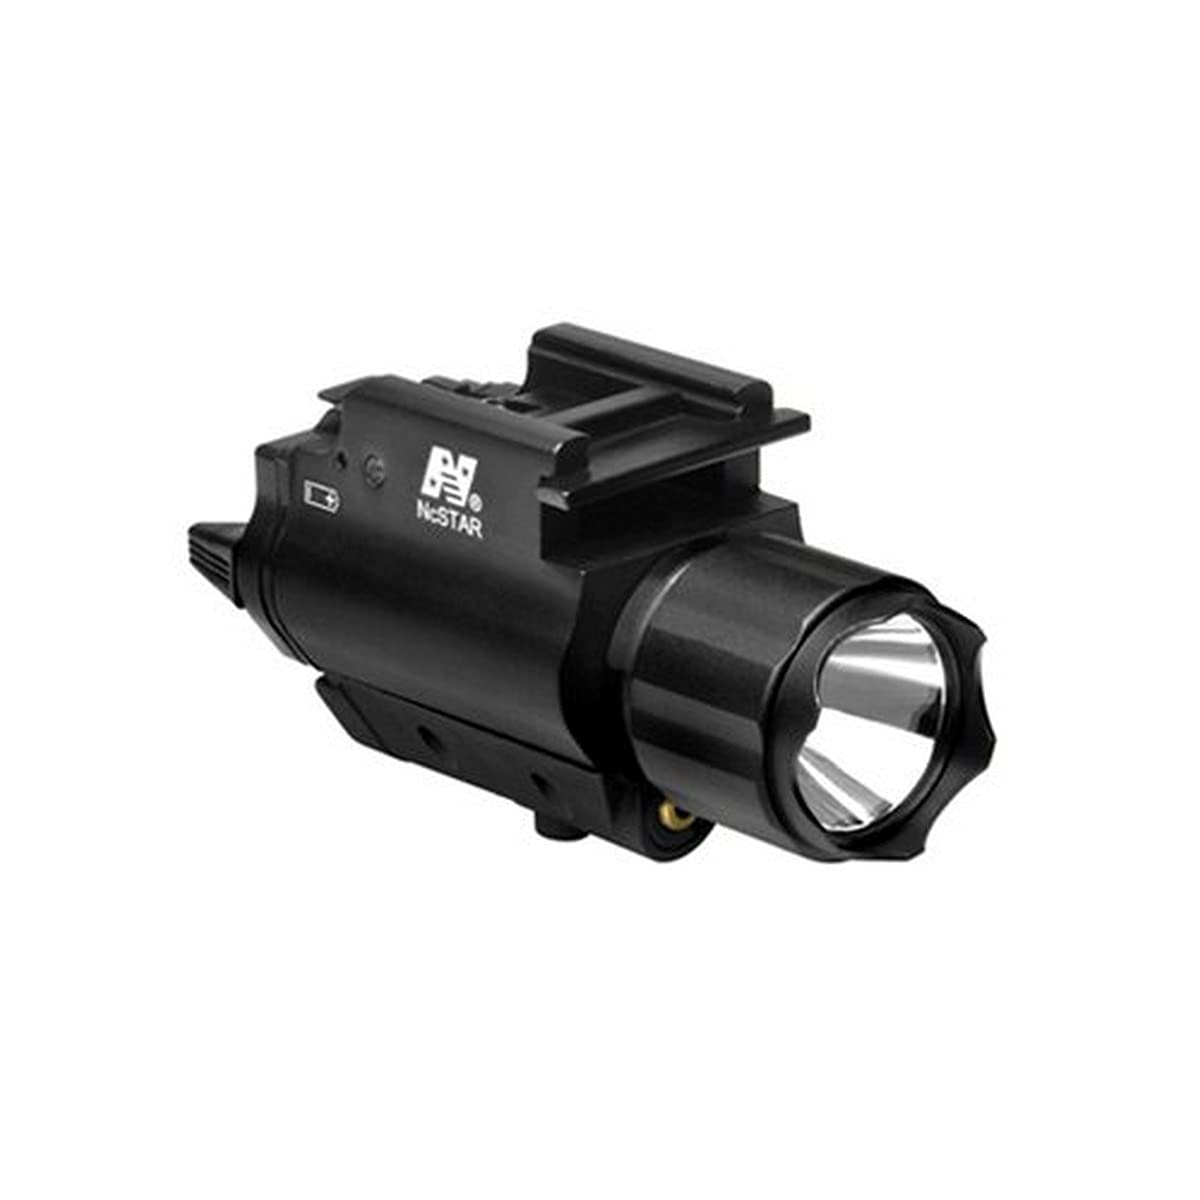 NcSTAR AQPTF//3 Pistol and Rifle 3W LED QR Gen III Flashlight for sale online